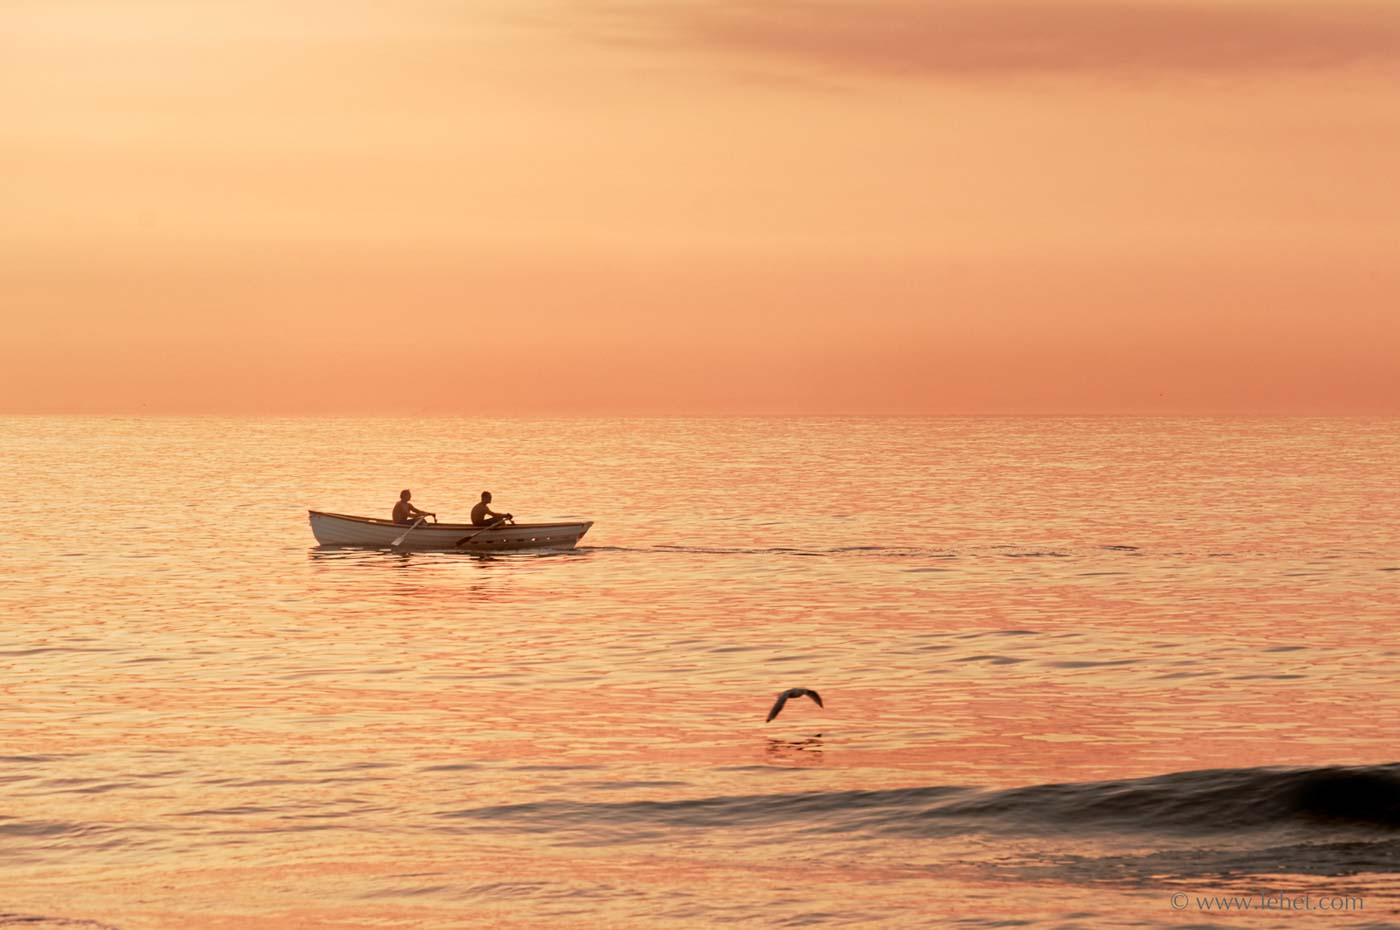 two lifeguards in a boat at dawn nj